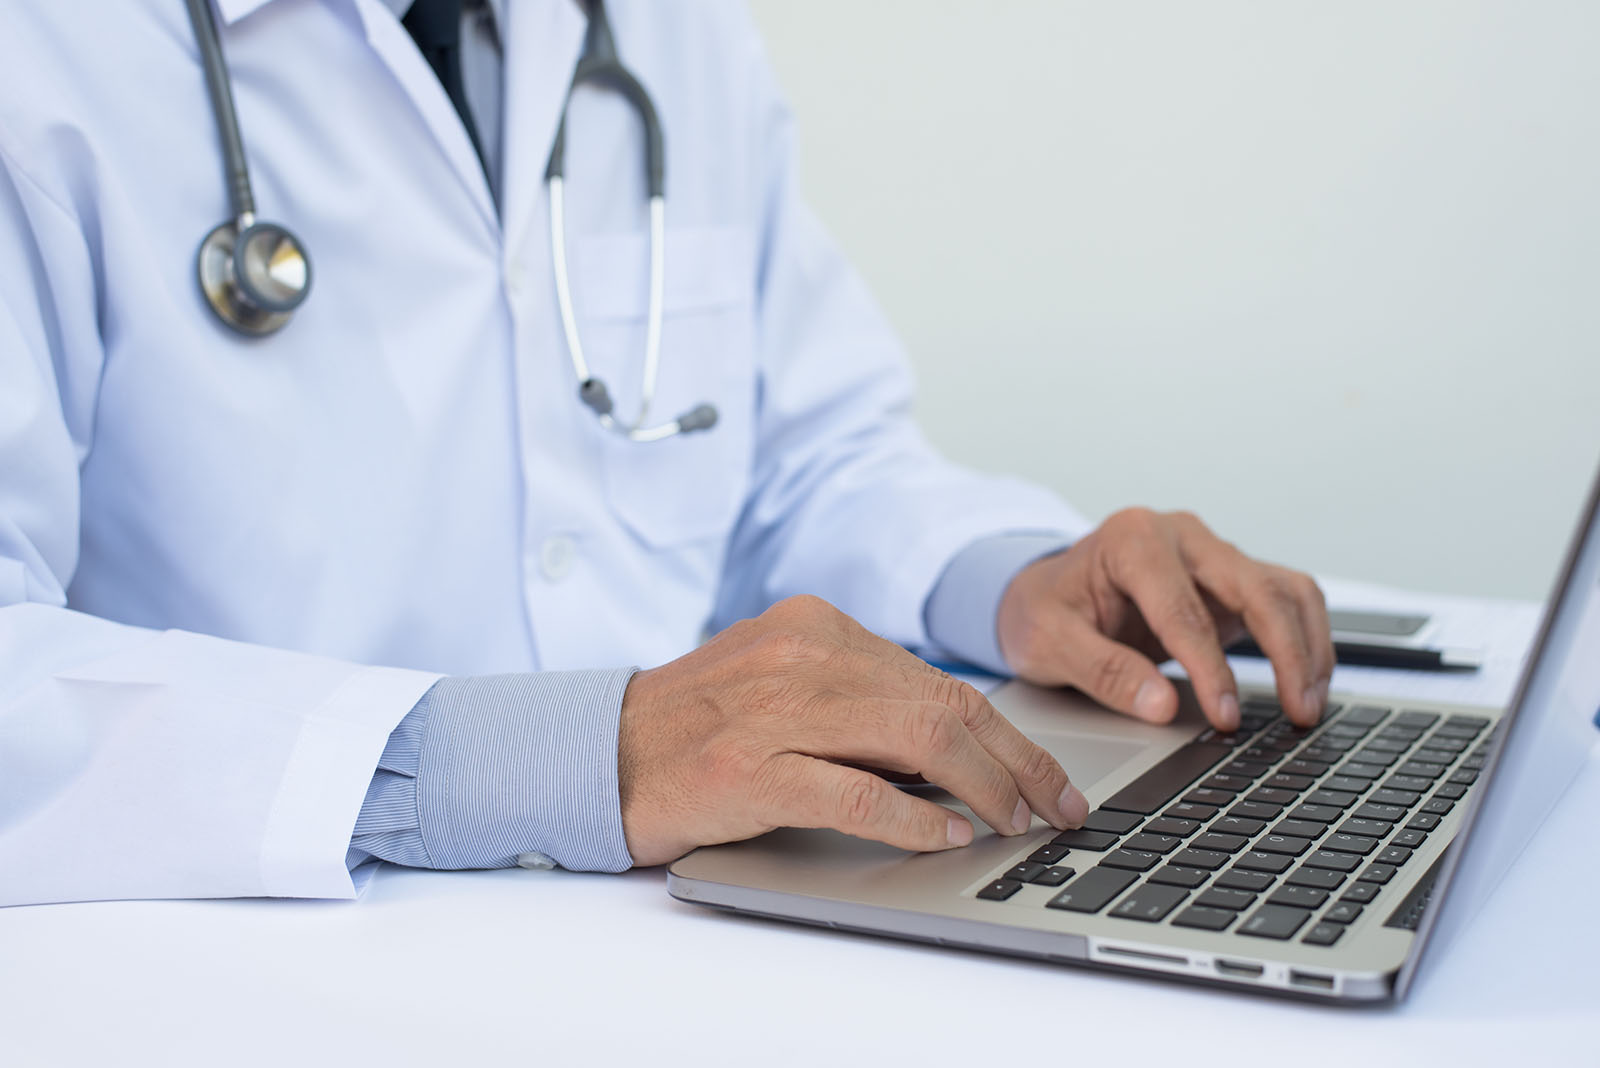 Doctor sharing medical information on a computer